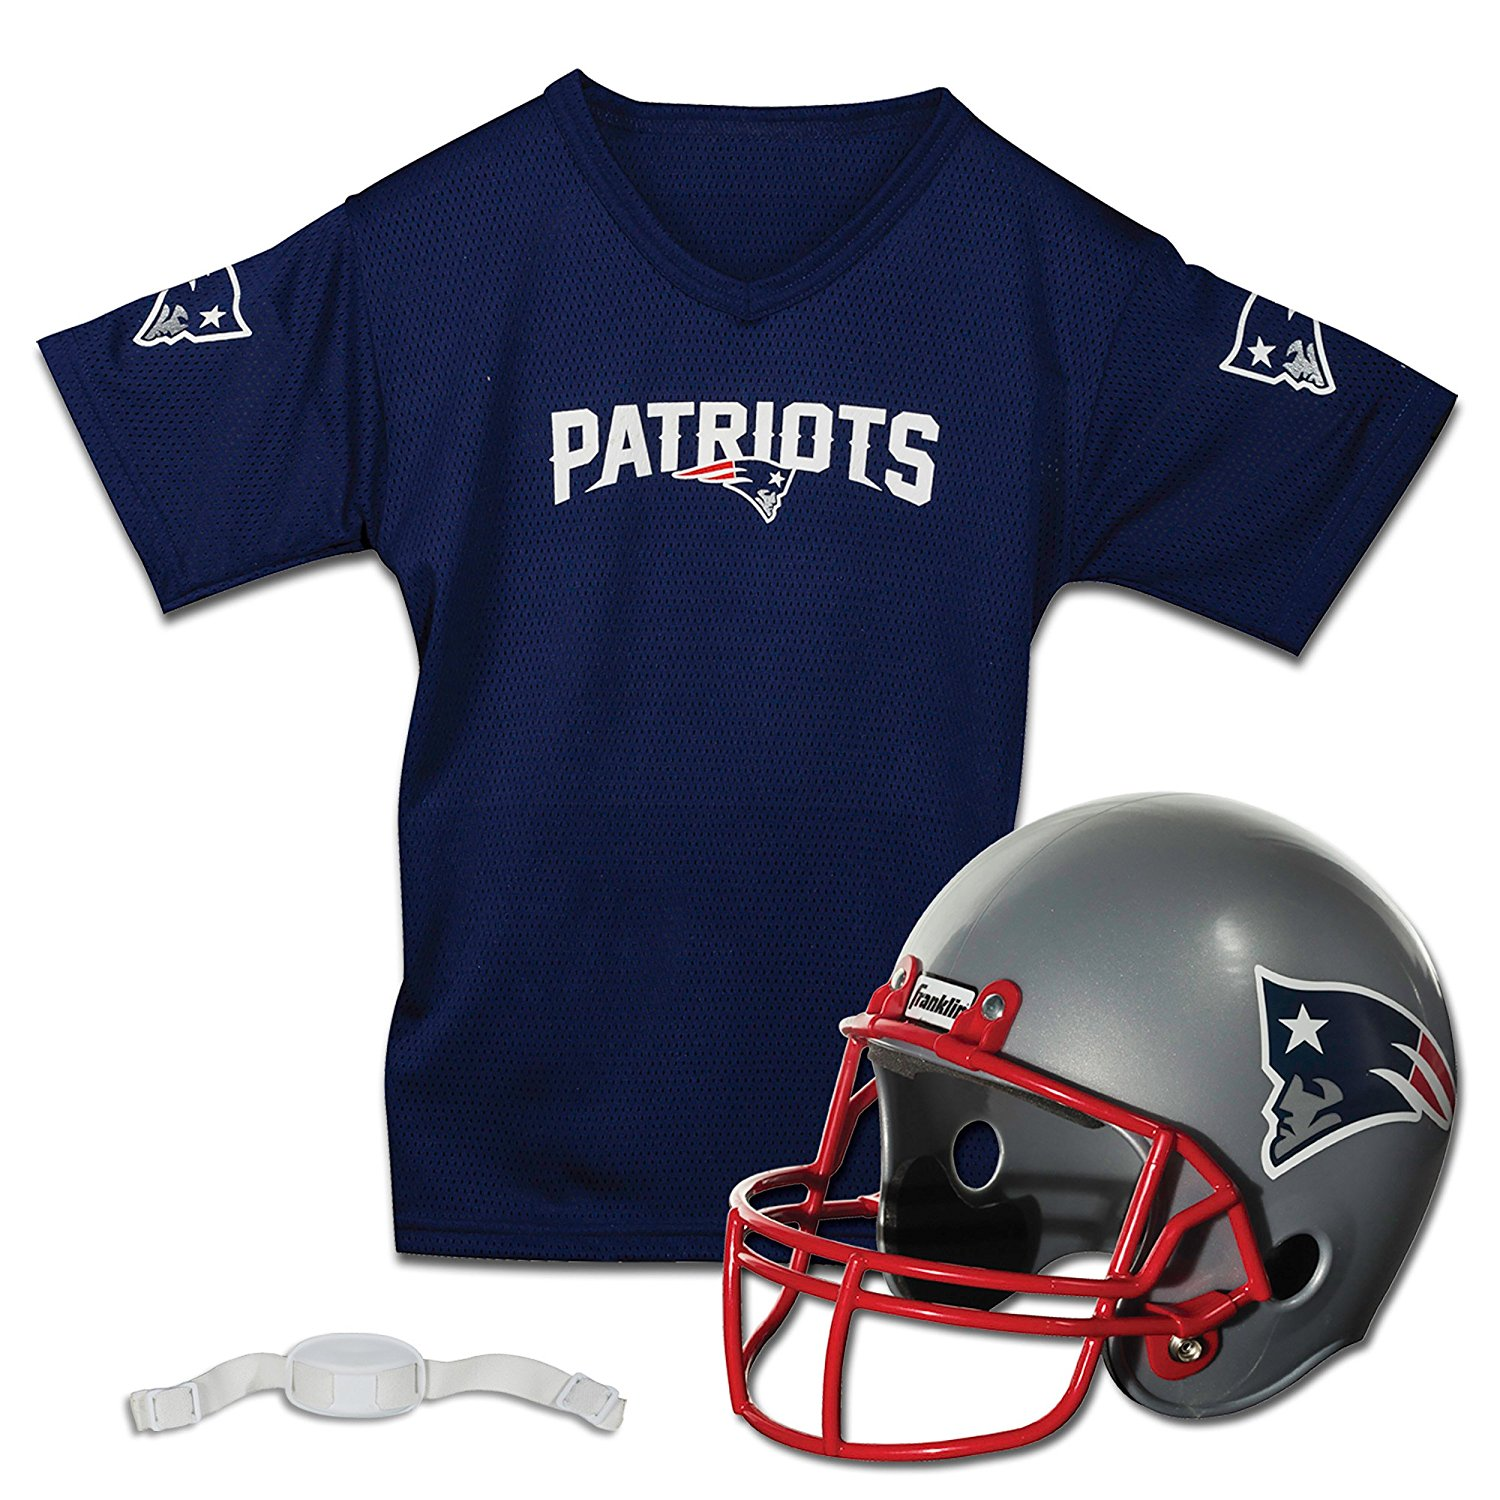 Franklin Sports NFL Helmet & Jersey Set